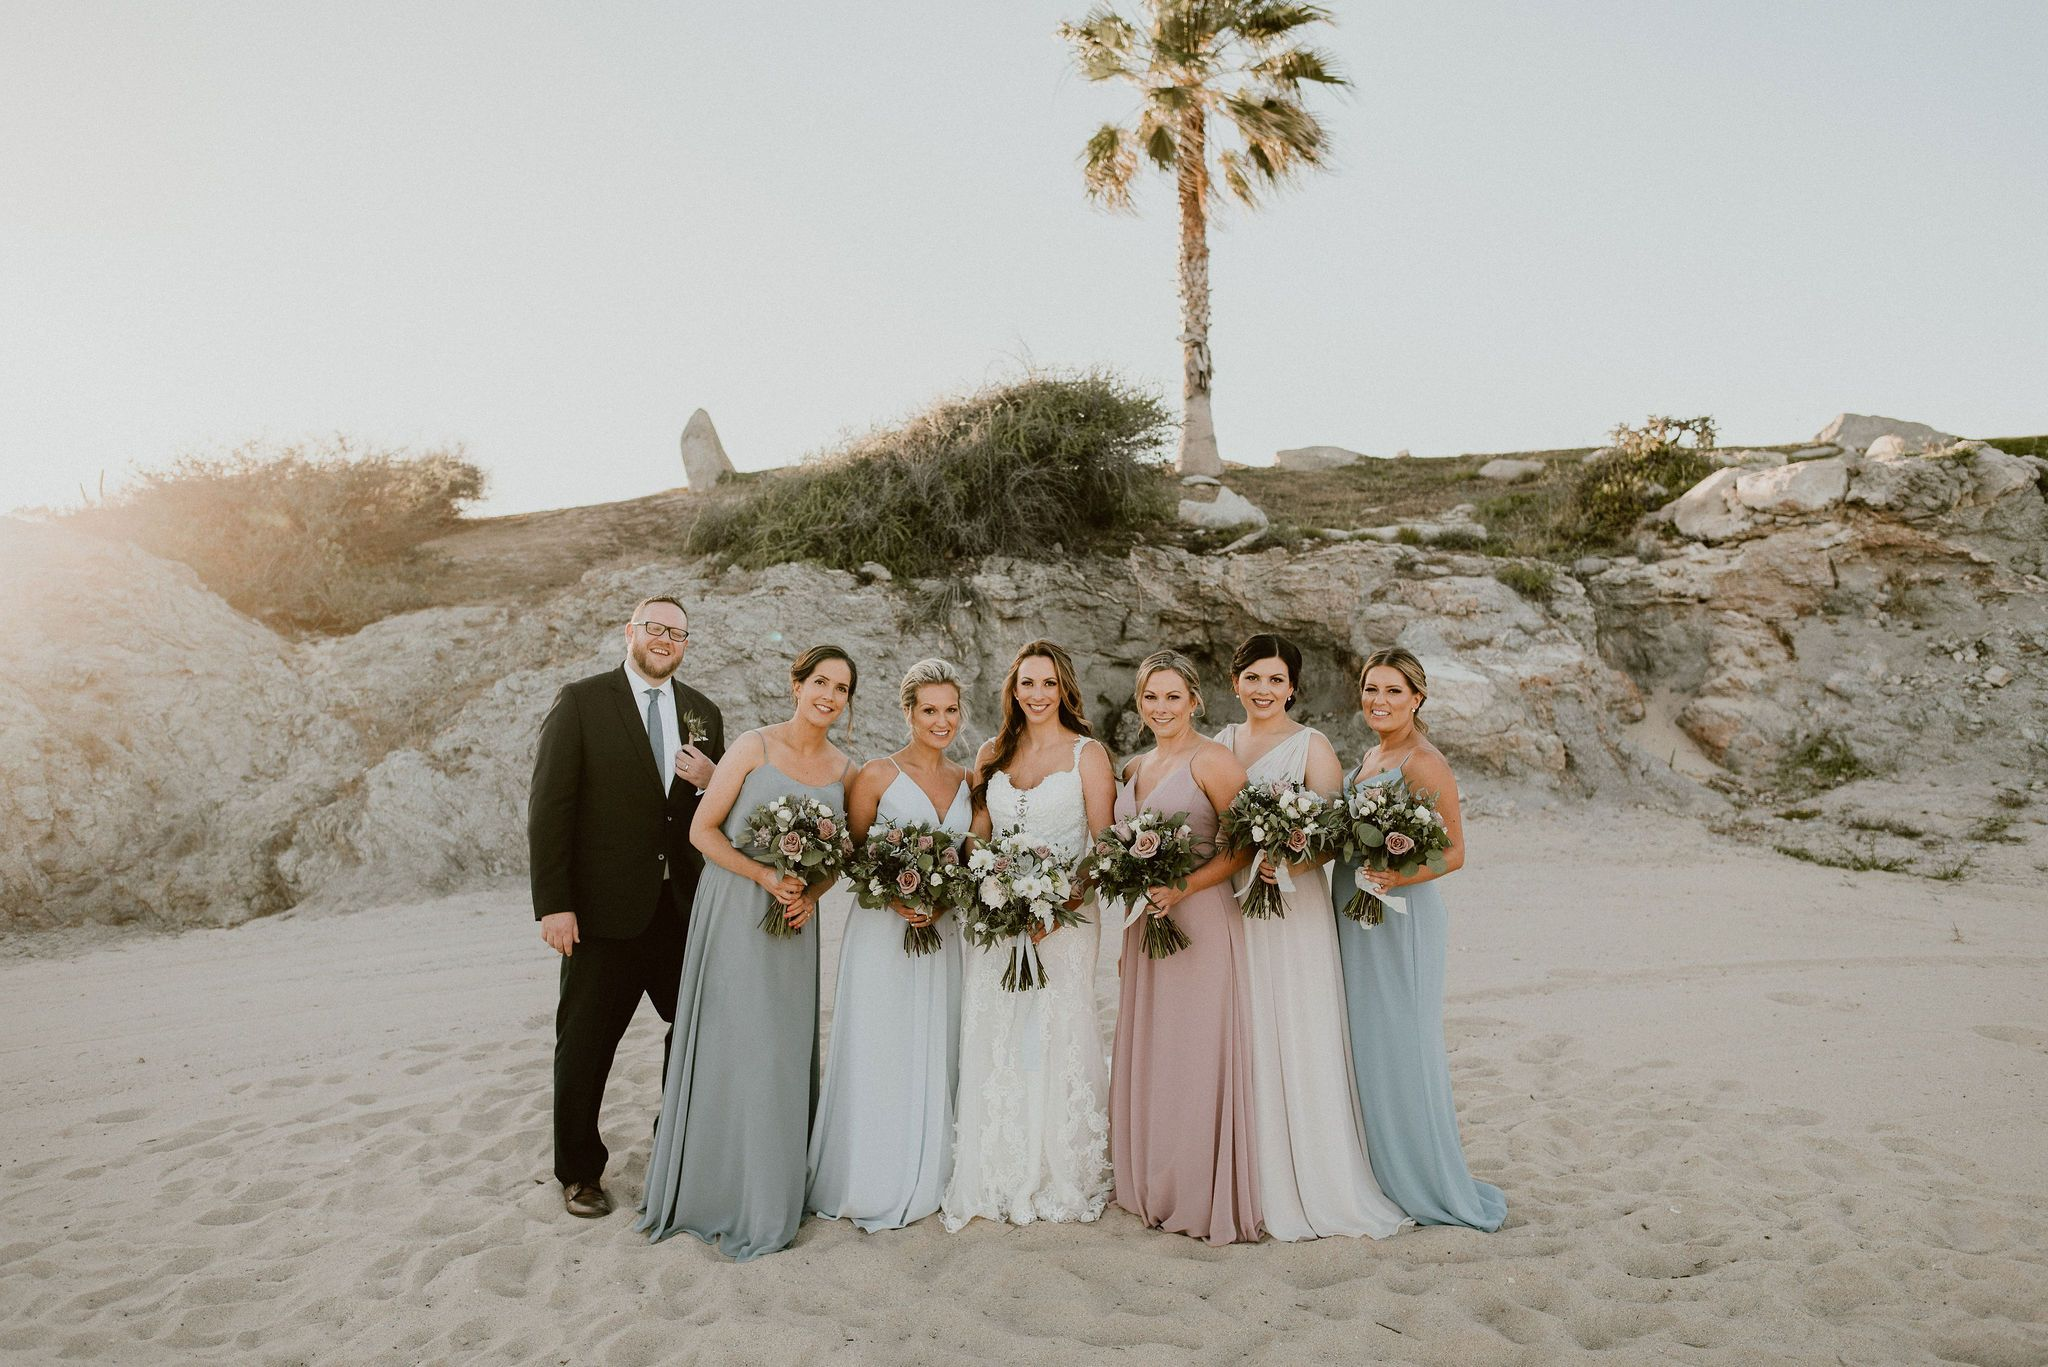 Bride with Bridesmaids at the Beach taking their Bridal Portraits with the Bridal Party. This was at Cabo del Sol in Cabo San Lucas, Mexico. Wedding Planning was done by Cabo Wedding Services.